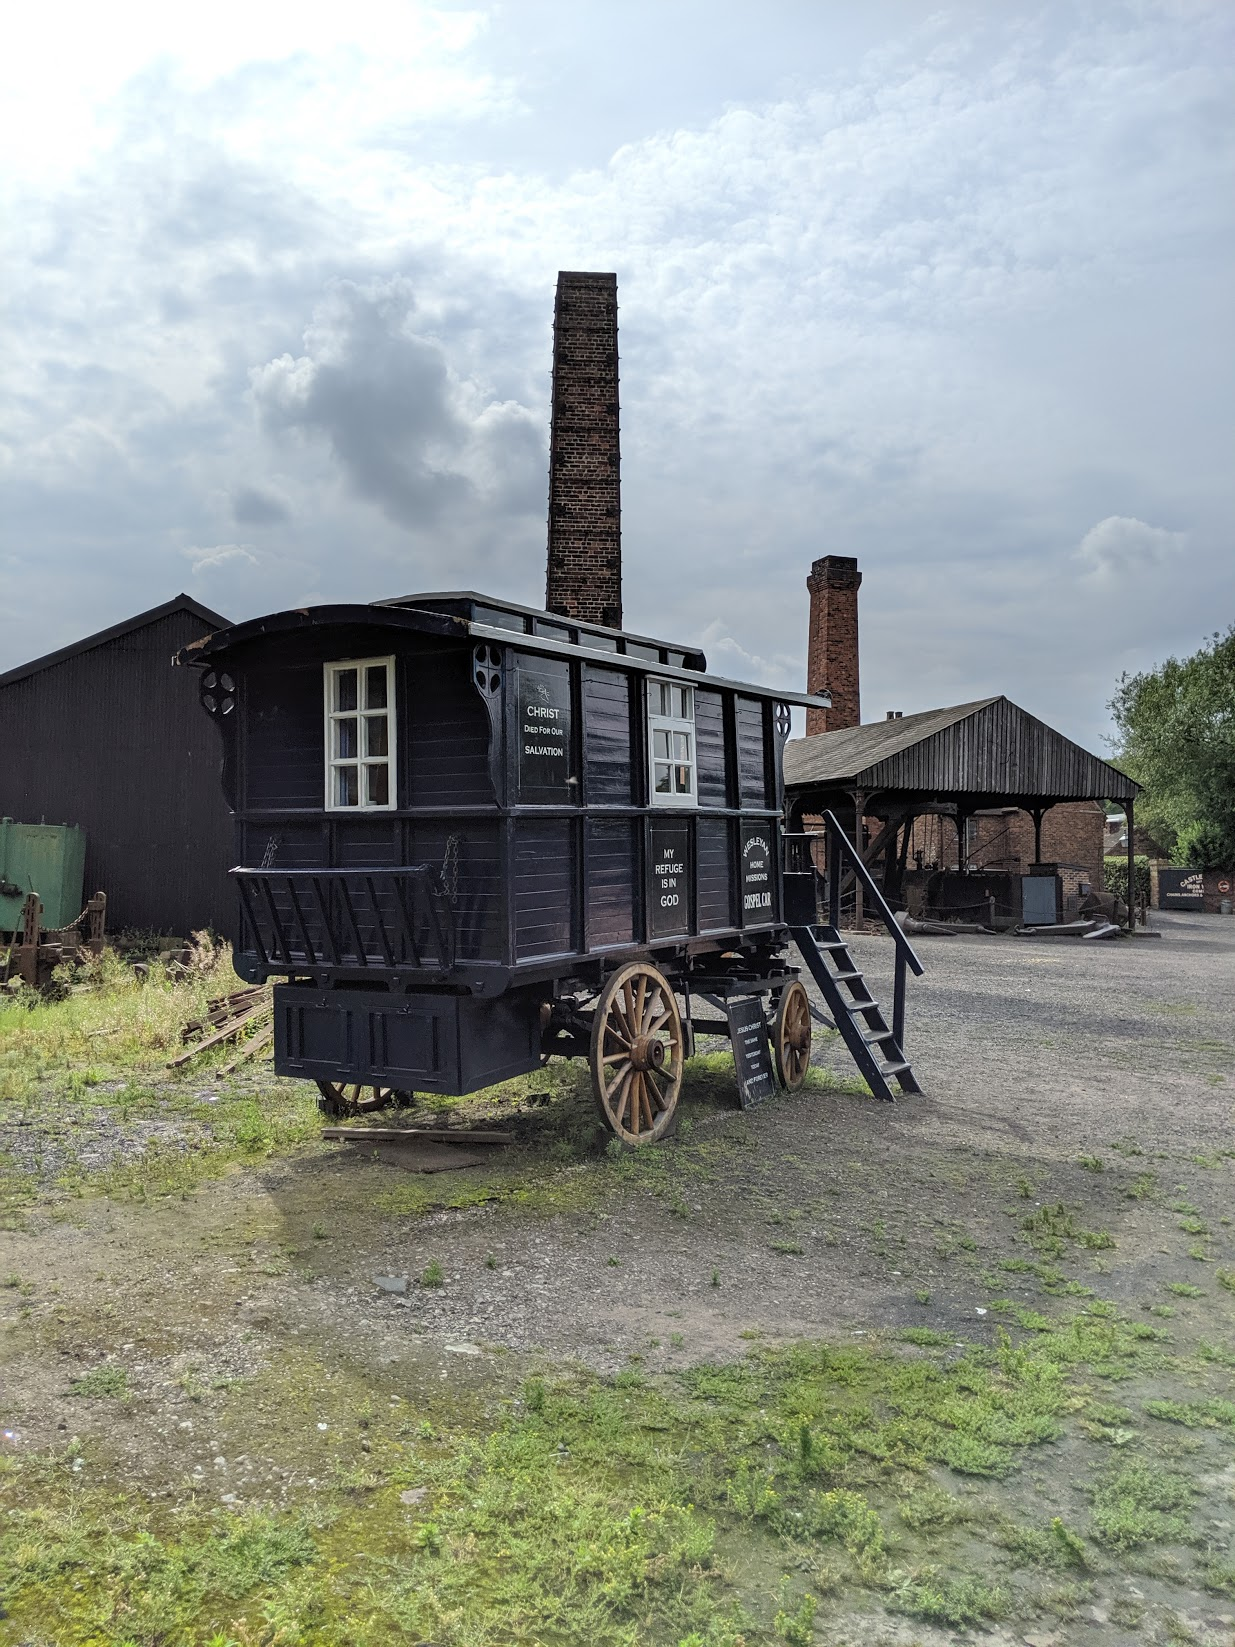 Fans of Peaky Blinders will recognise many locations from the show, including Anchor Forge shown here, where lots of unsavoury events have transpired across the series.